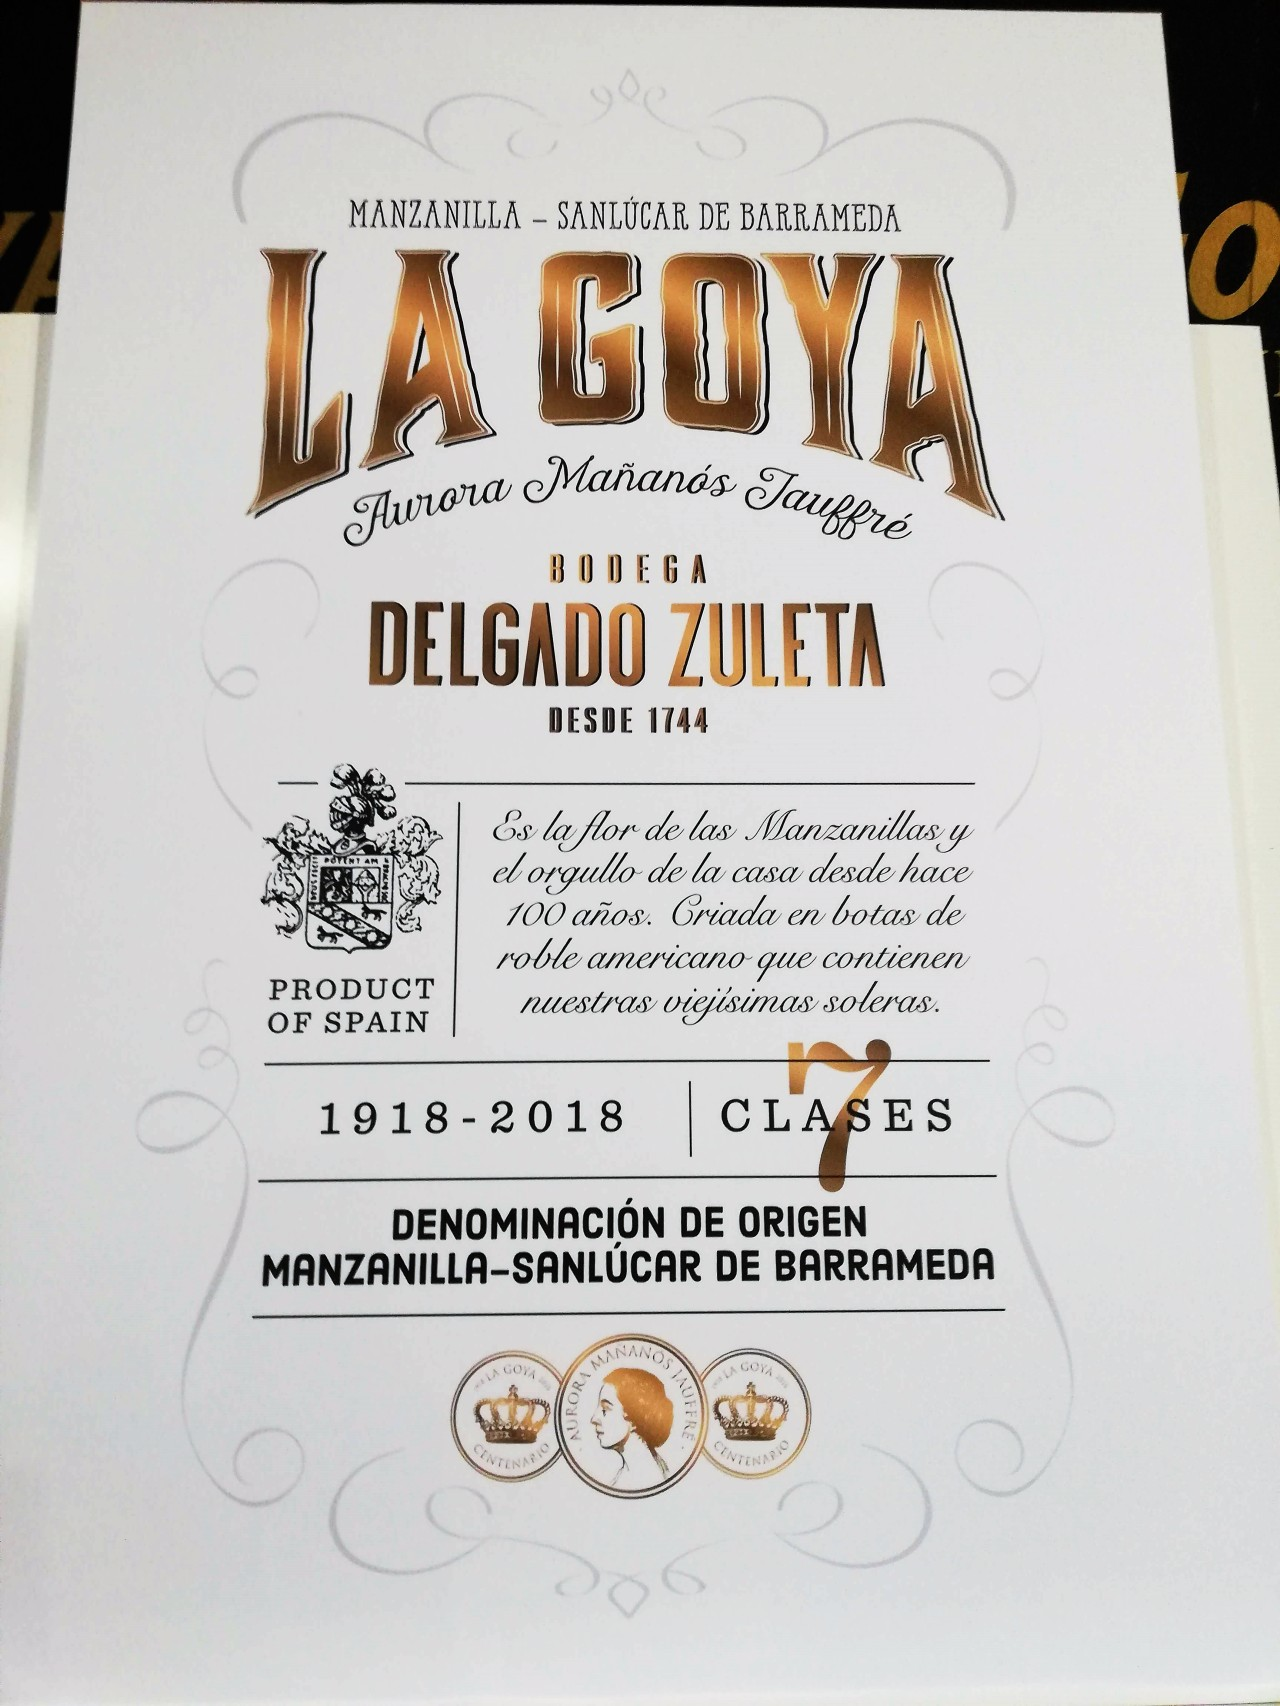 ¡Cien años de la Manzanilla La Goya y nueva etiqueta! /Manzanilla La Goya celebrates its 100th birthday and its new label!